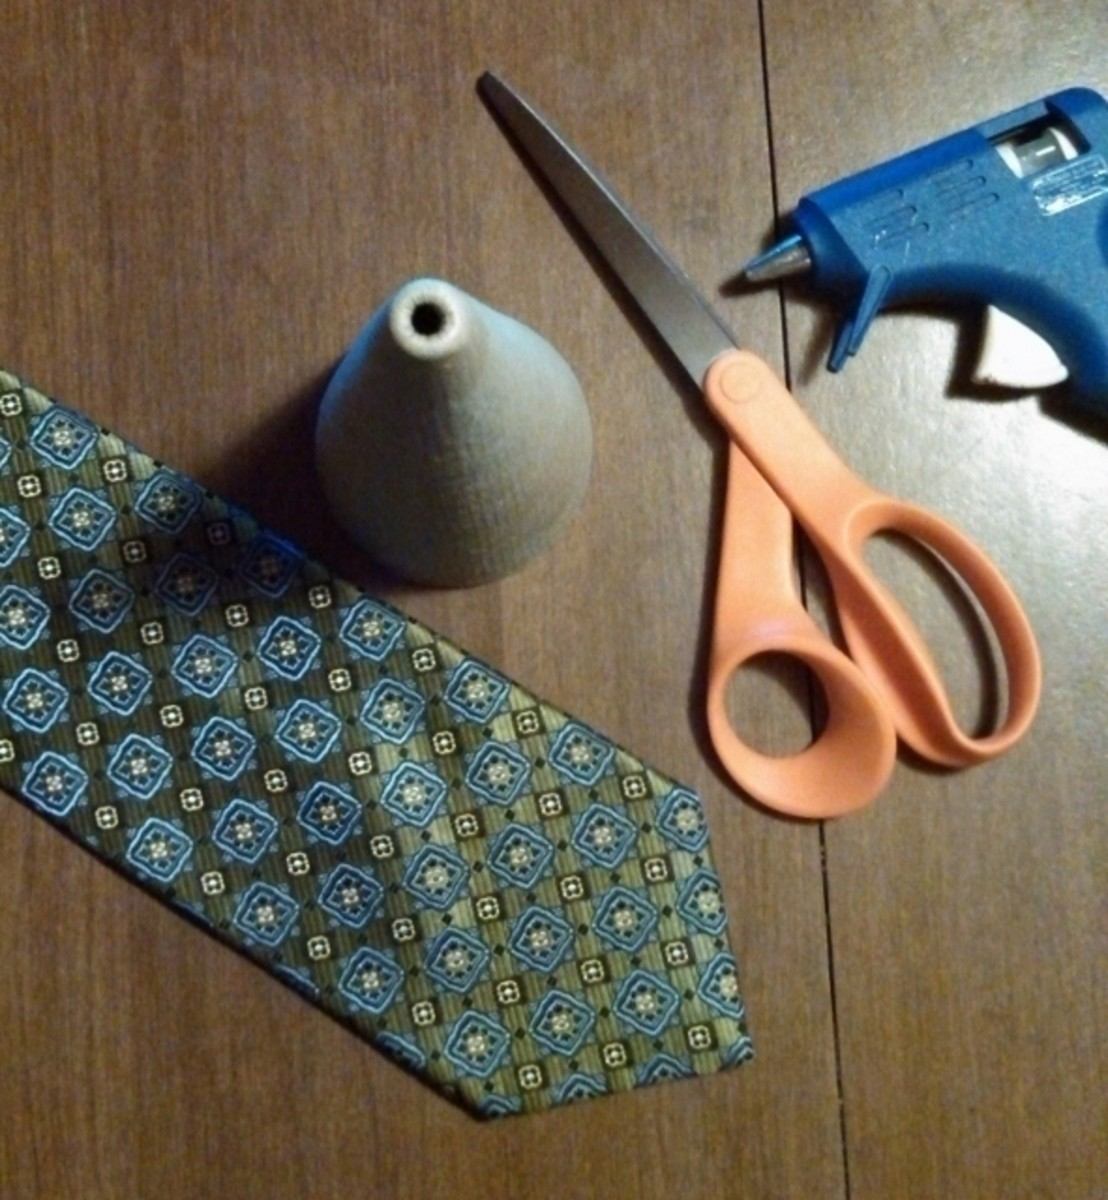 1) Gather your supplies. Cut the necktie at 10 inches from the widest point of the tie. Open the back seam. Remove tags and inside padding material.